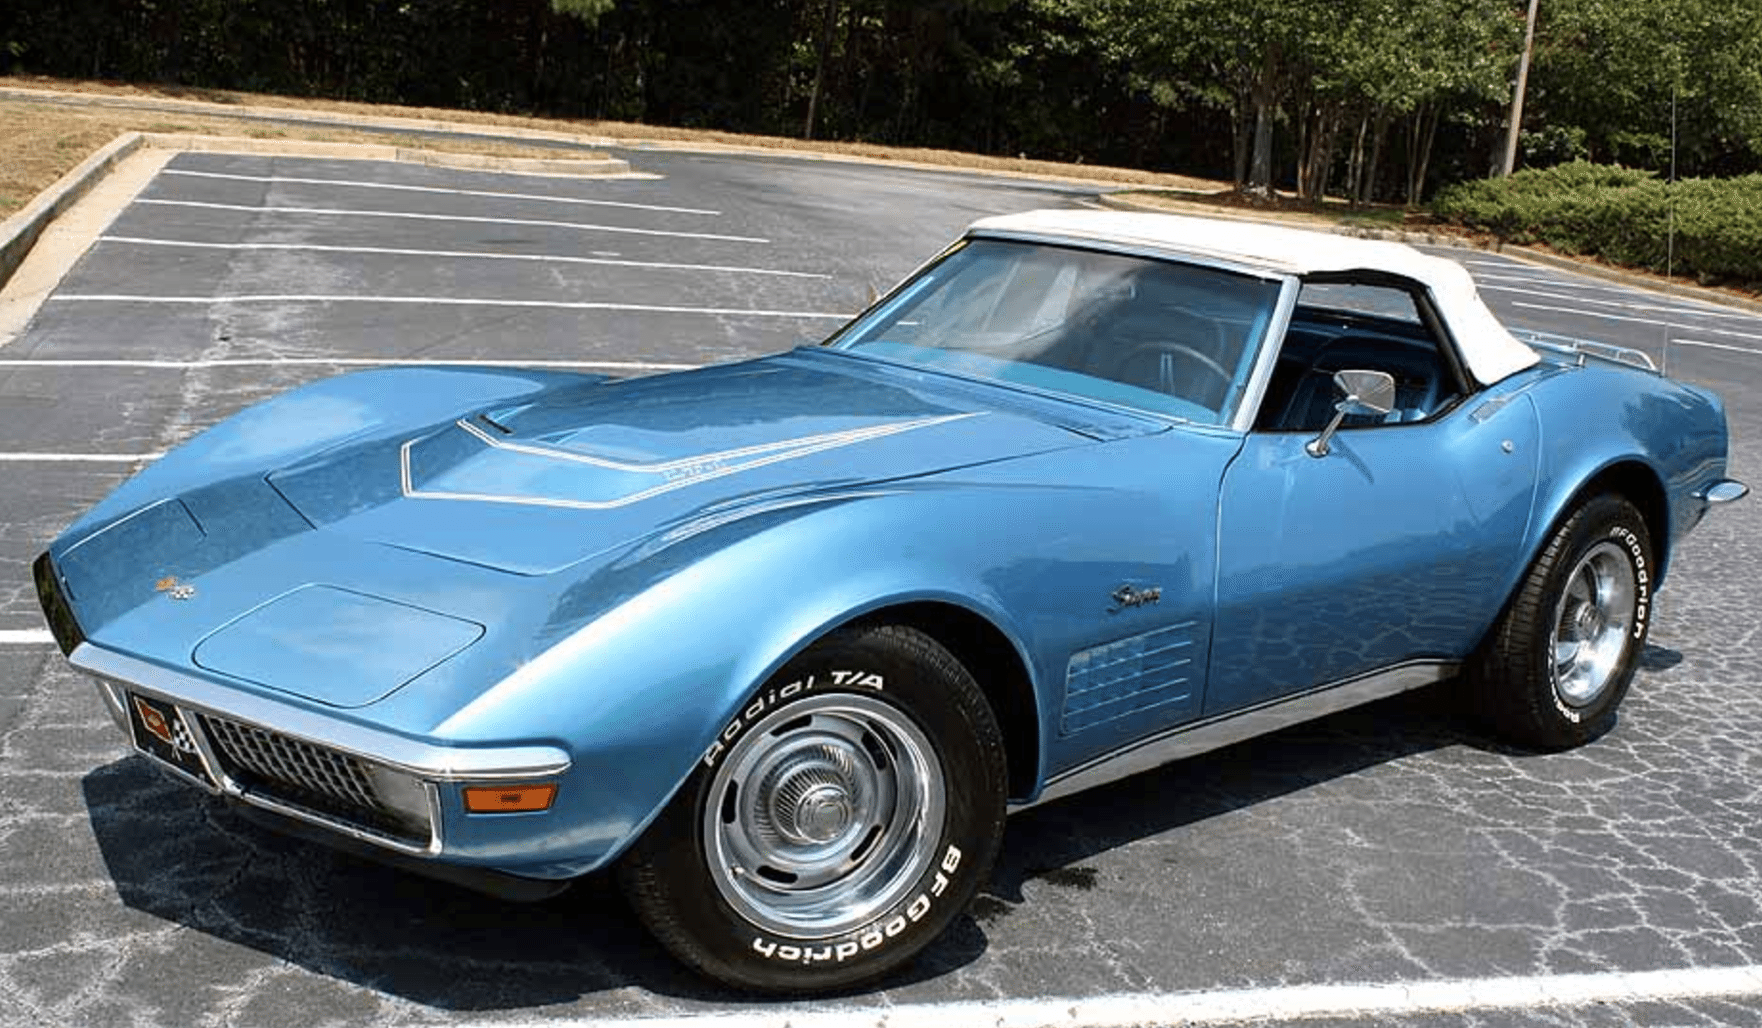 in addition Corvetteblackedoutinterior Coupe in addition F A E C Faeae E B Ffa Bf additionally  moreover X H. on 1972 corvette zr1